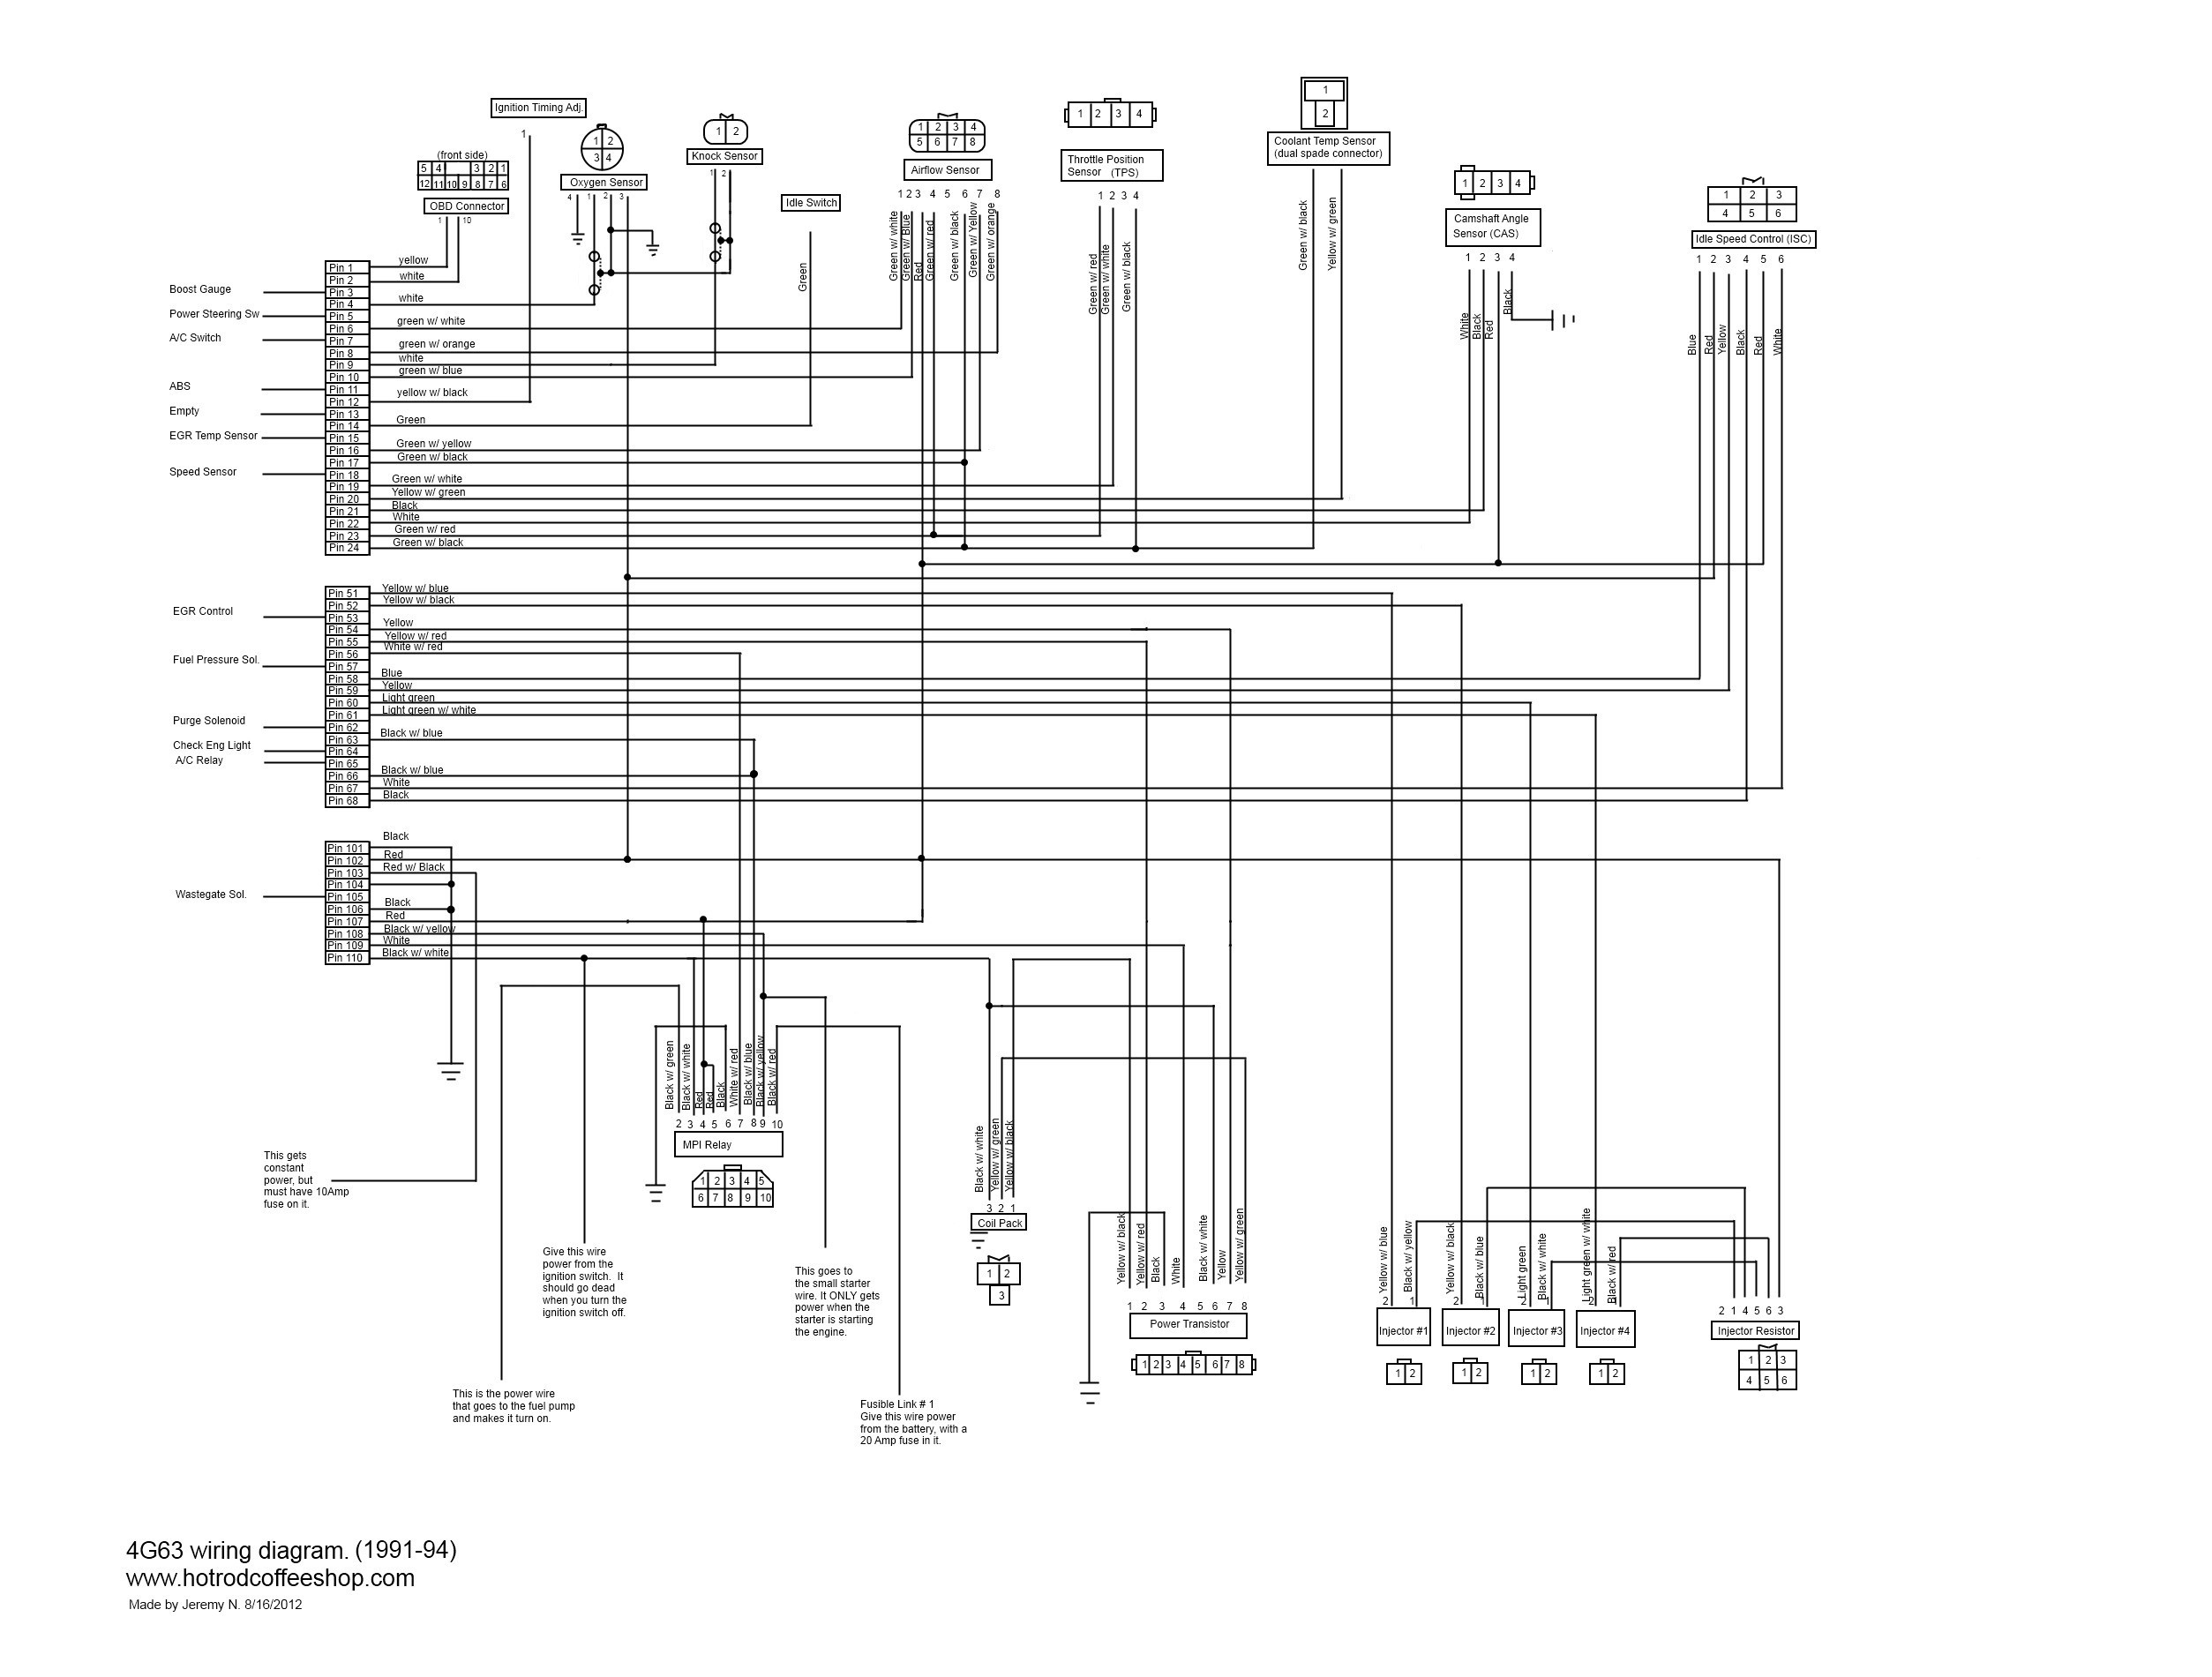 Mitsubishi Space Star Wiring Diagram